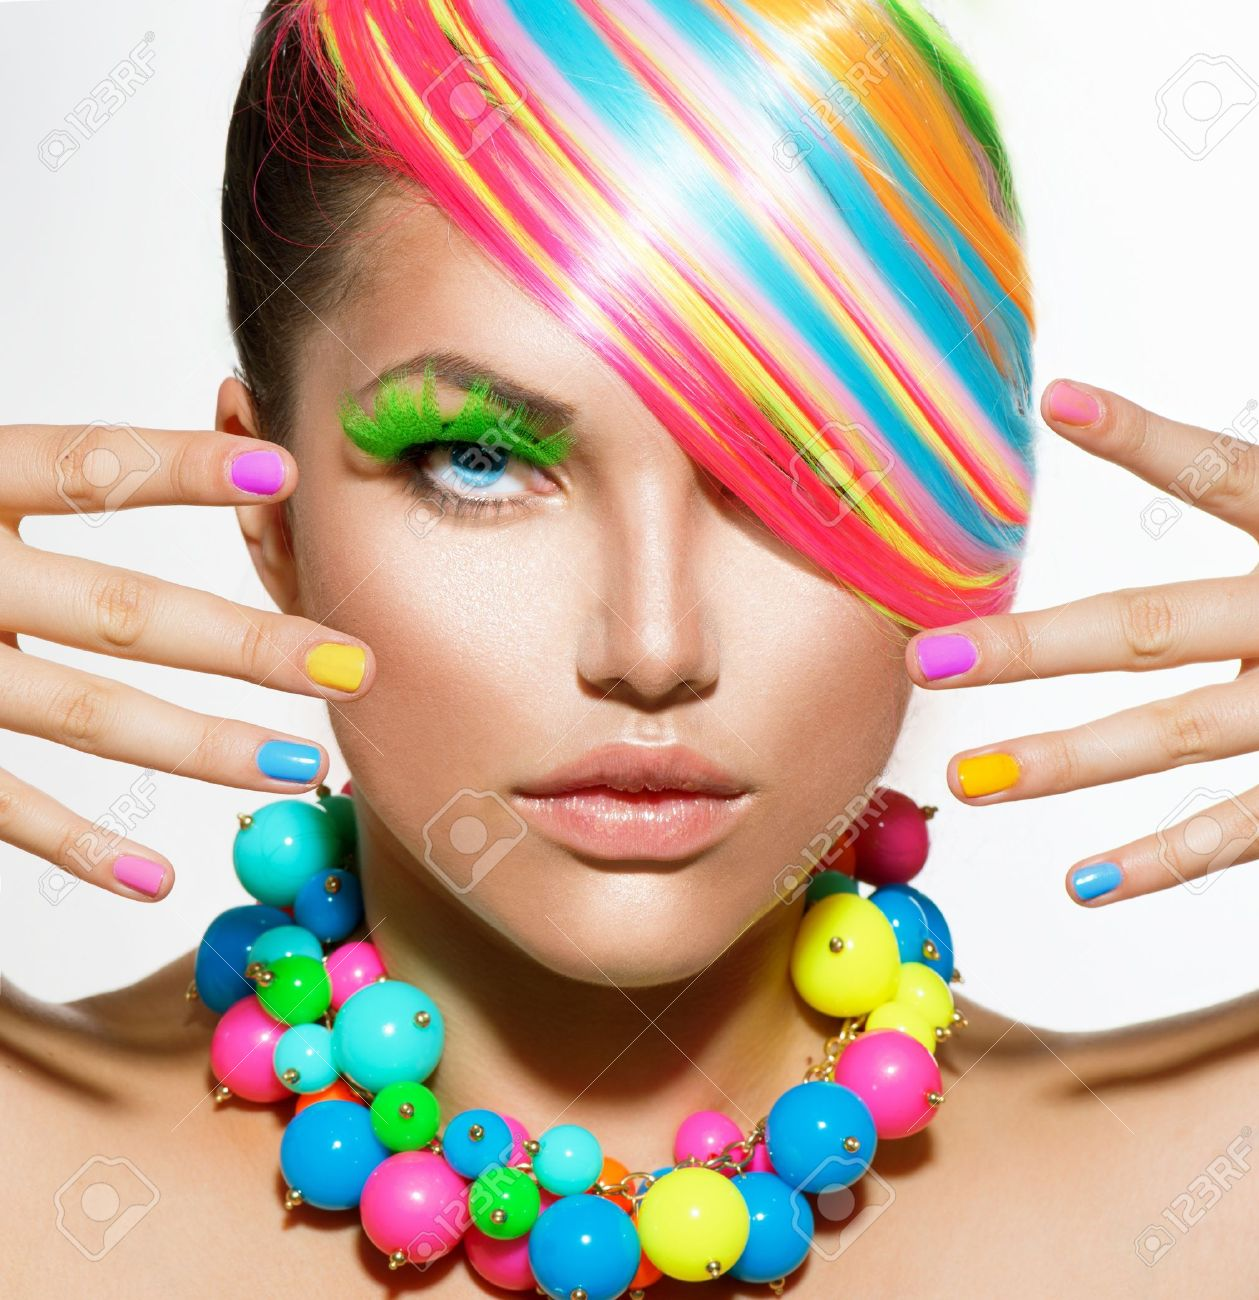 Beauty Girl Portrait with Colorful Makeup, Hair and Accessories Stock Photo - 21341939